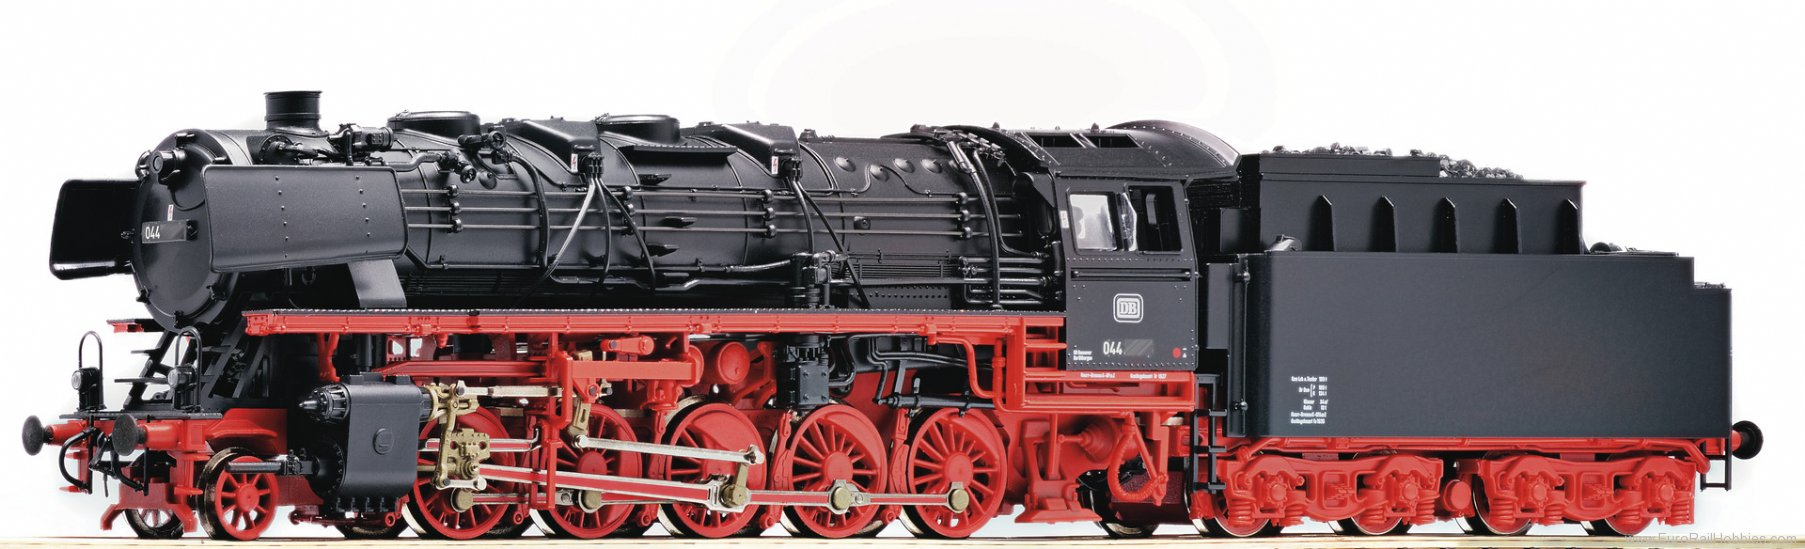 Roco 72236 Steam locomotive BR 044, DB (DCC w/Sound)